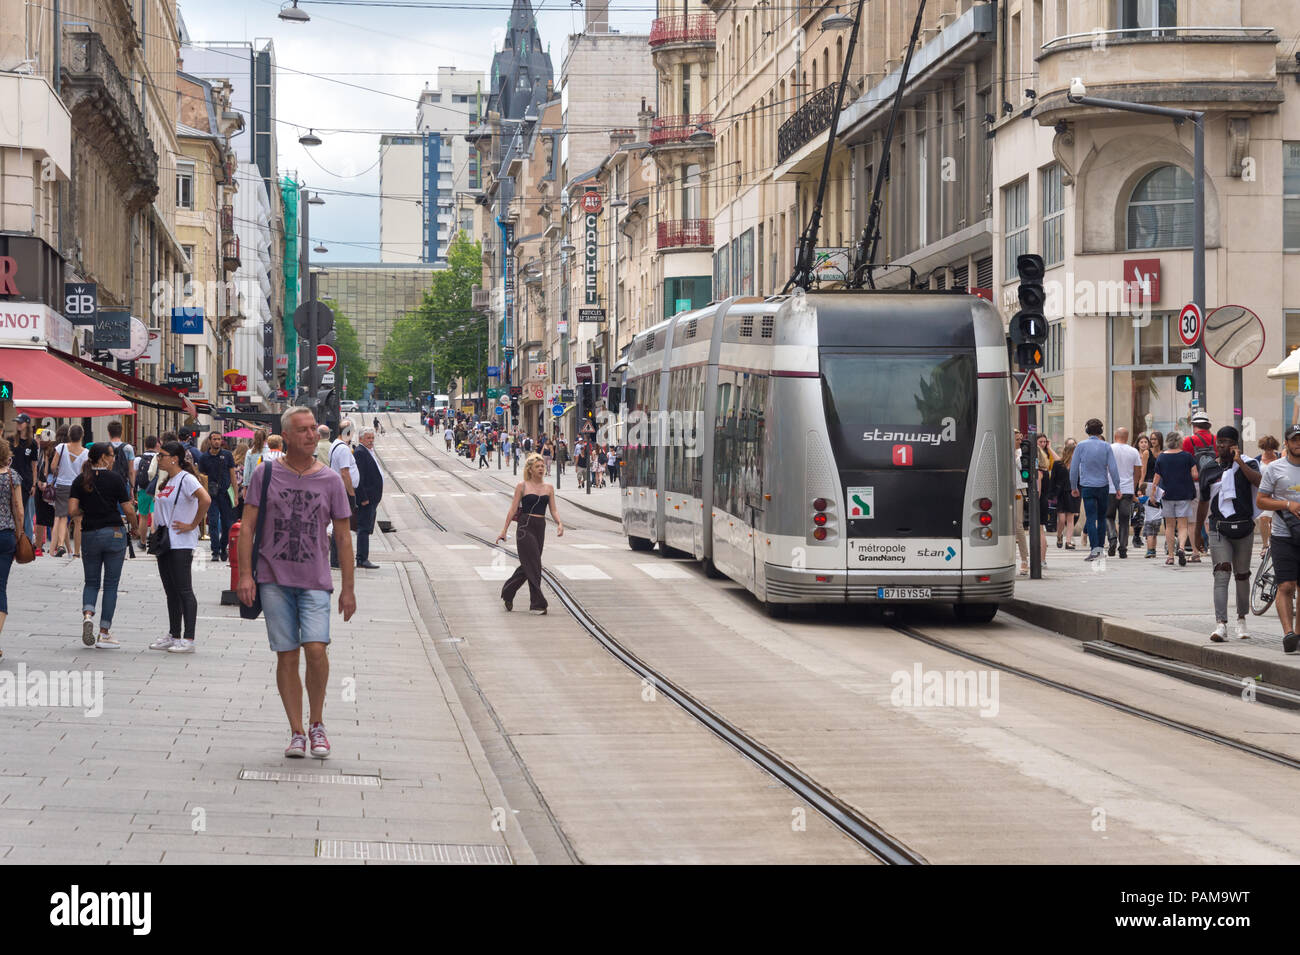 Nancy, France - 21 June 2018: Bombardier Guided Light Transit guided bus on Saint-Georges street. - Stock Image